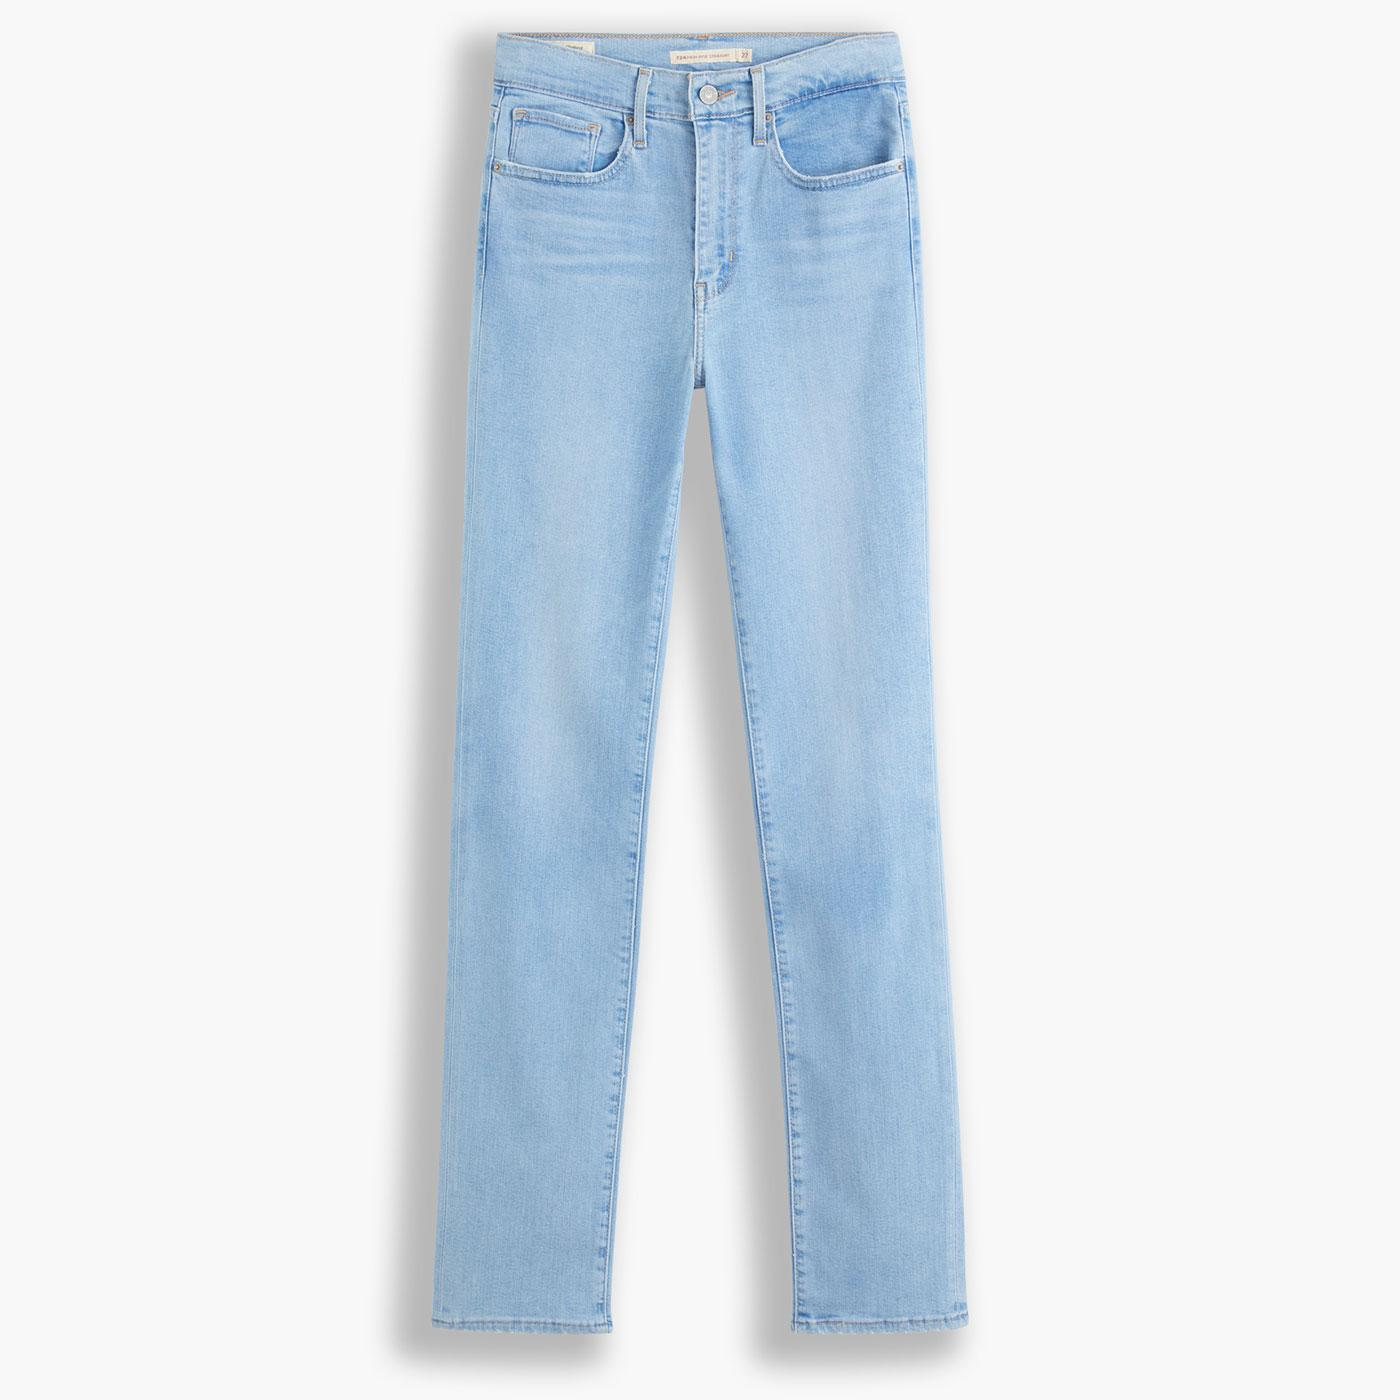 LEVI'S 724 High Rise Straight Jeans in Rio Aura